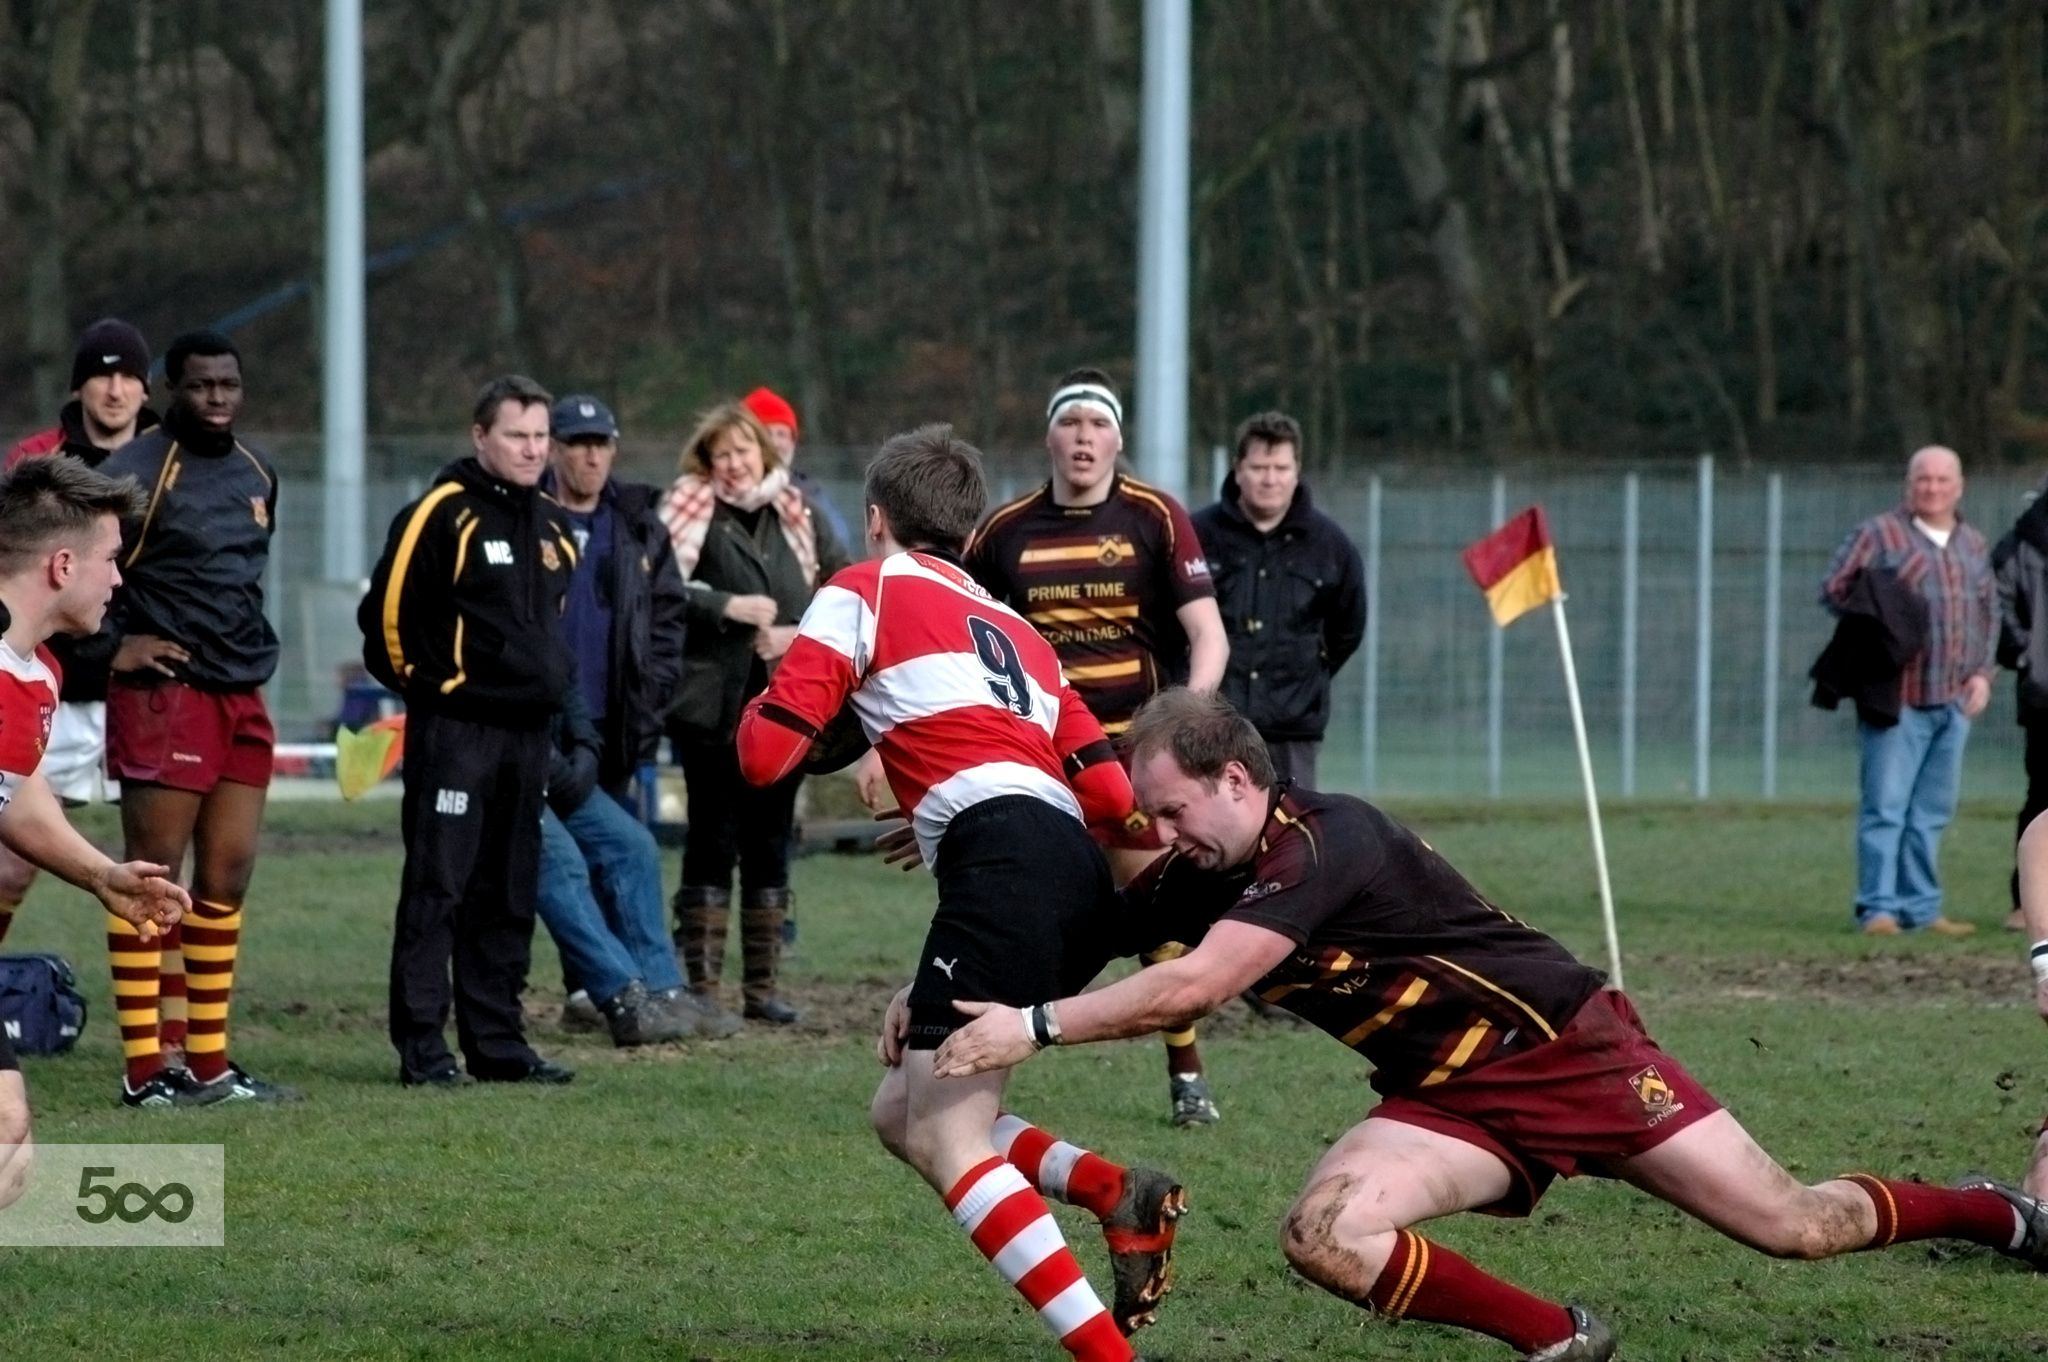 Rugby 11/03/2014 by CJM Photography on 500px